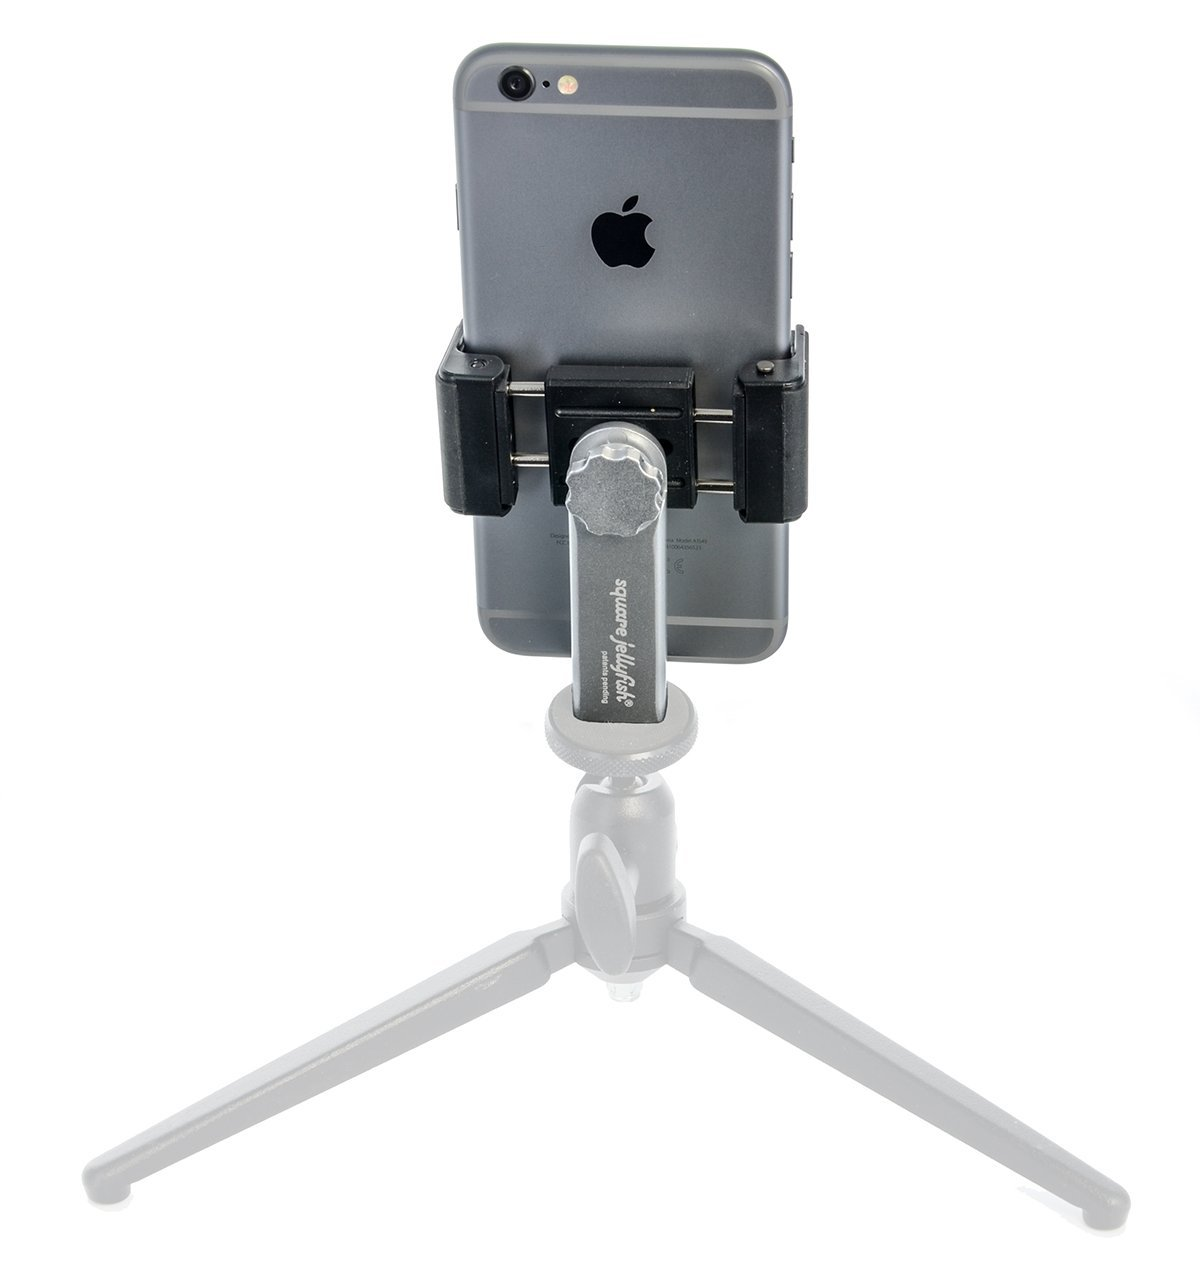 Suqare Jellyfish tripod mount iphone 6